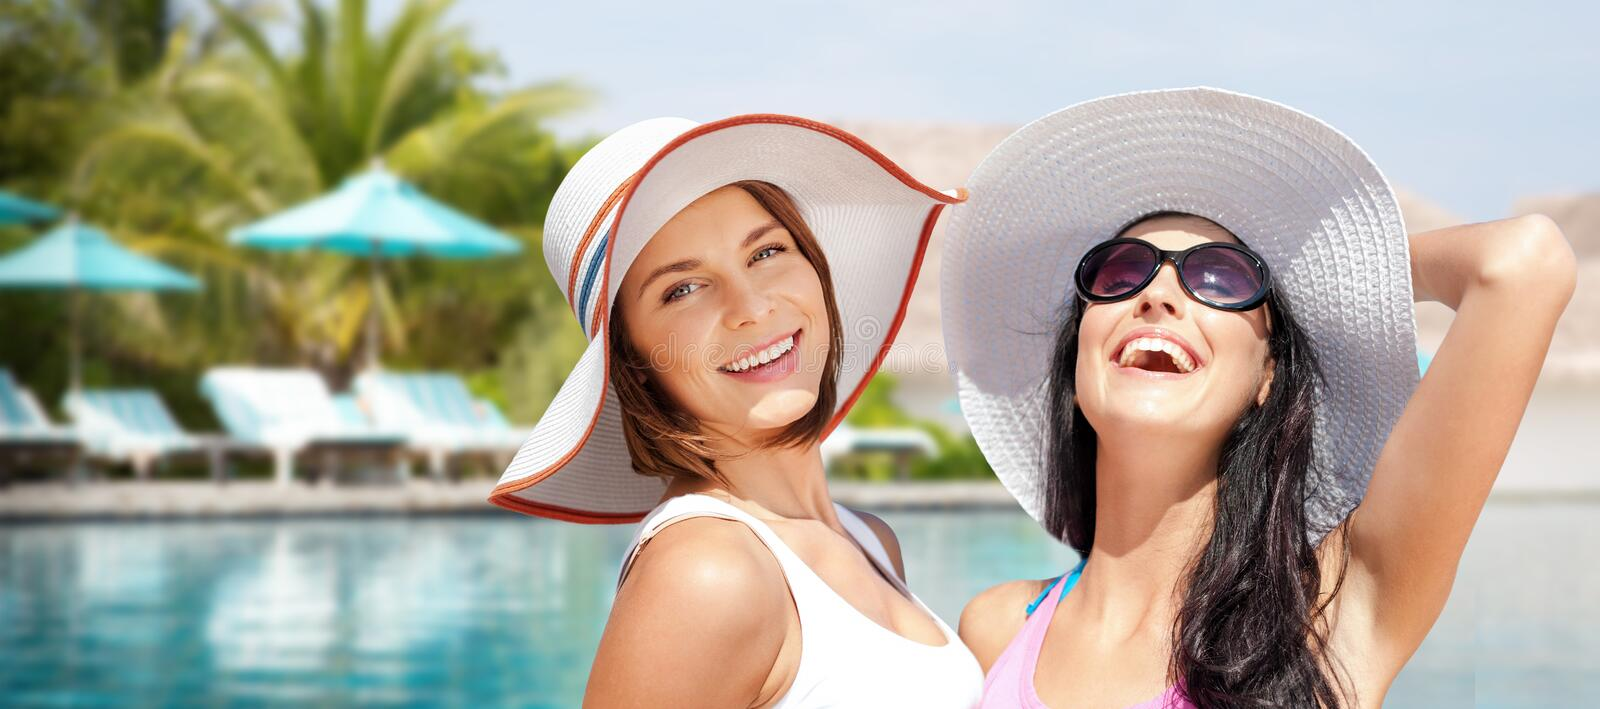 Smiling young women in hats on beach royalty free stock image